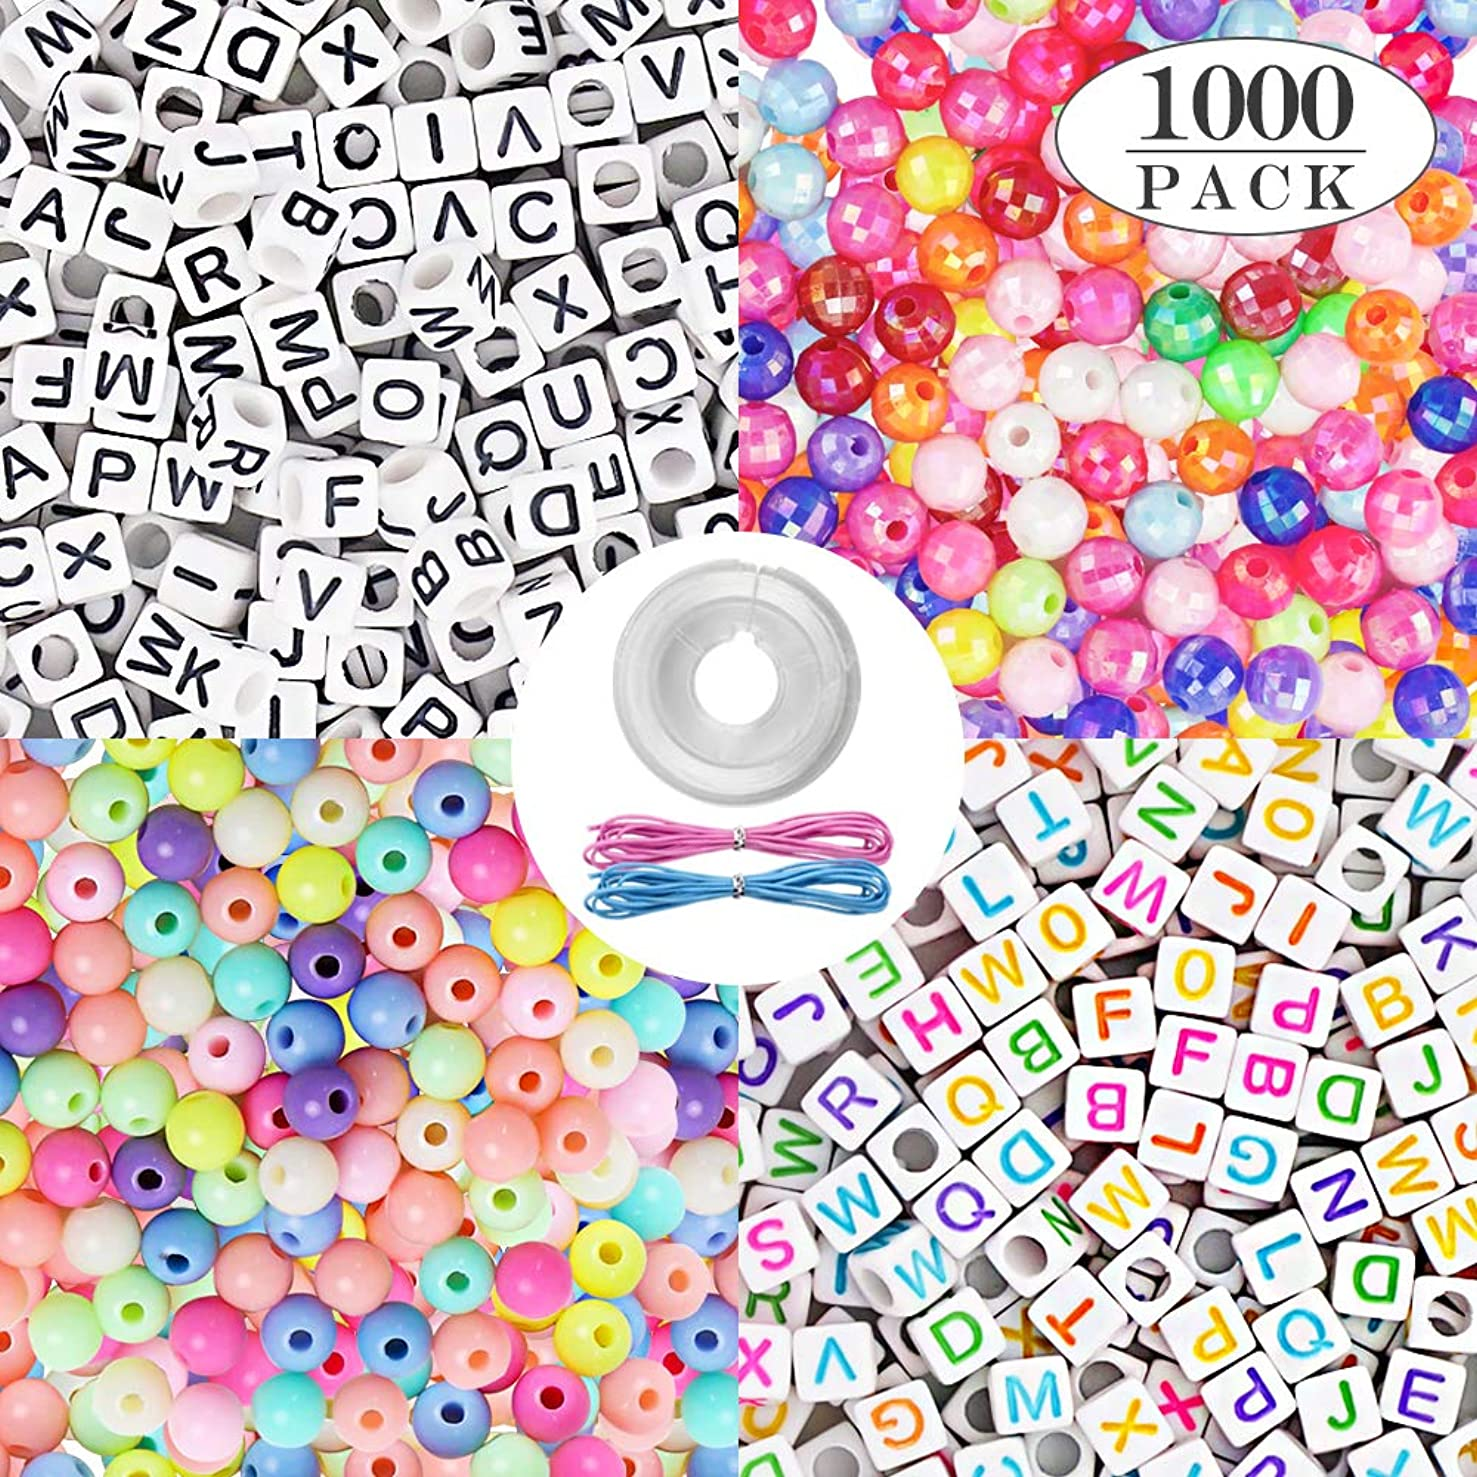 Quefe 1000pcs 4 Kinds Acrylic Alphabet Letter Beads and Color Round Beads with Elastic Cord Crystal String Cord for Jewelry Making DIY Necklace Bracelet(6mm) (B-2 Kinds)